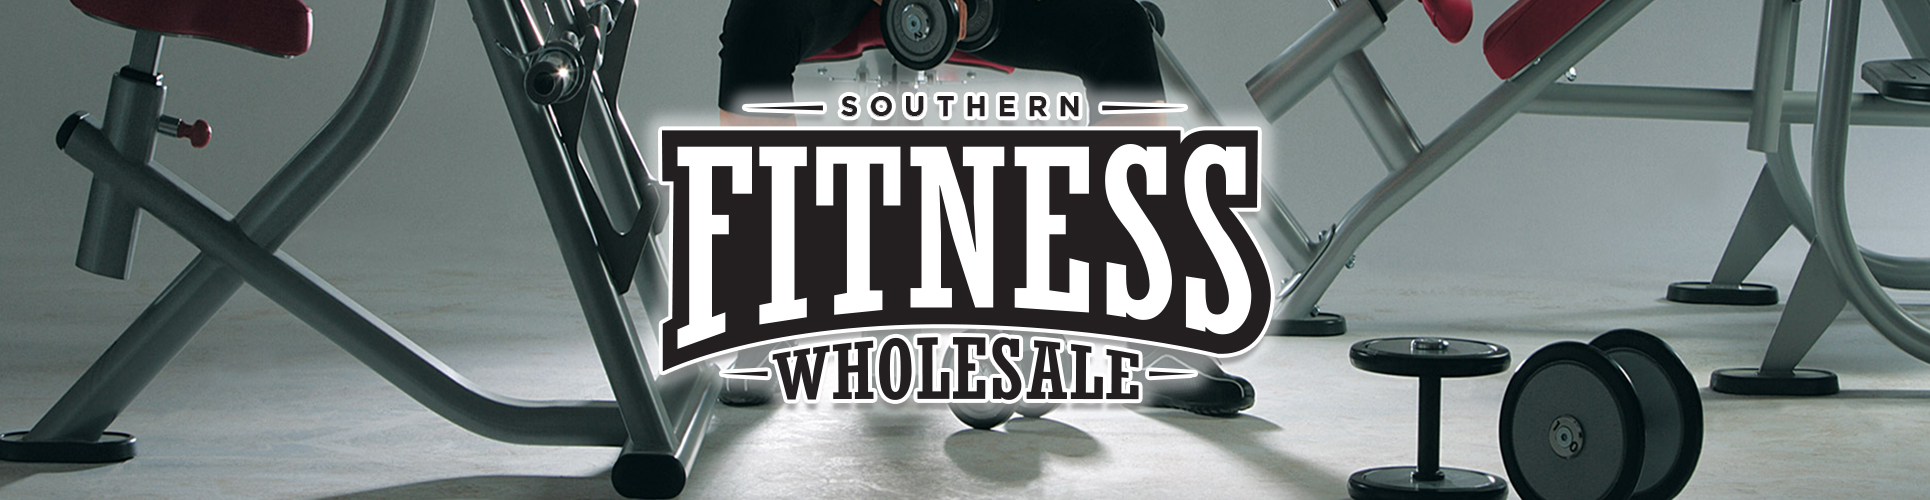 Southern Fitness Wholesale Accessories